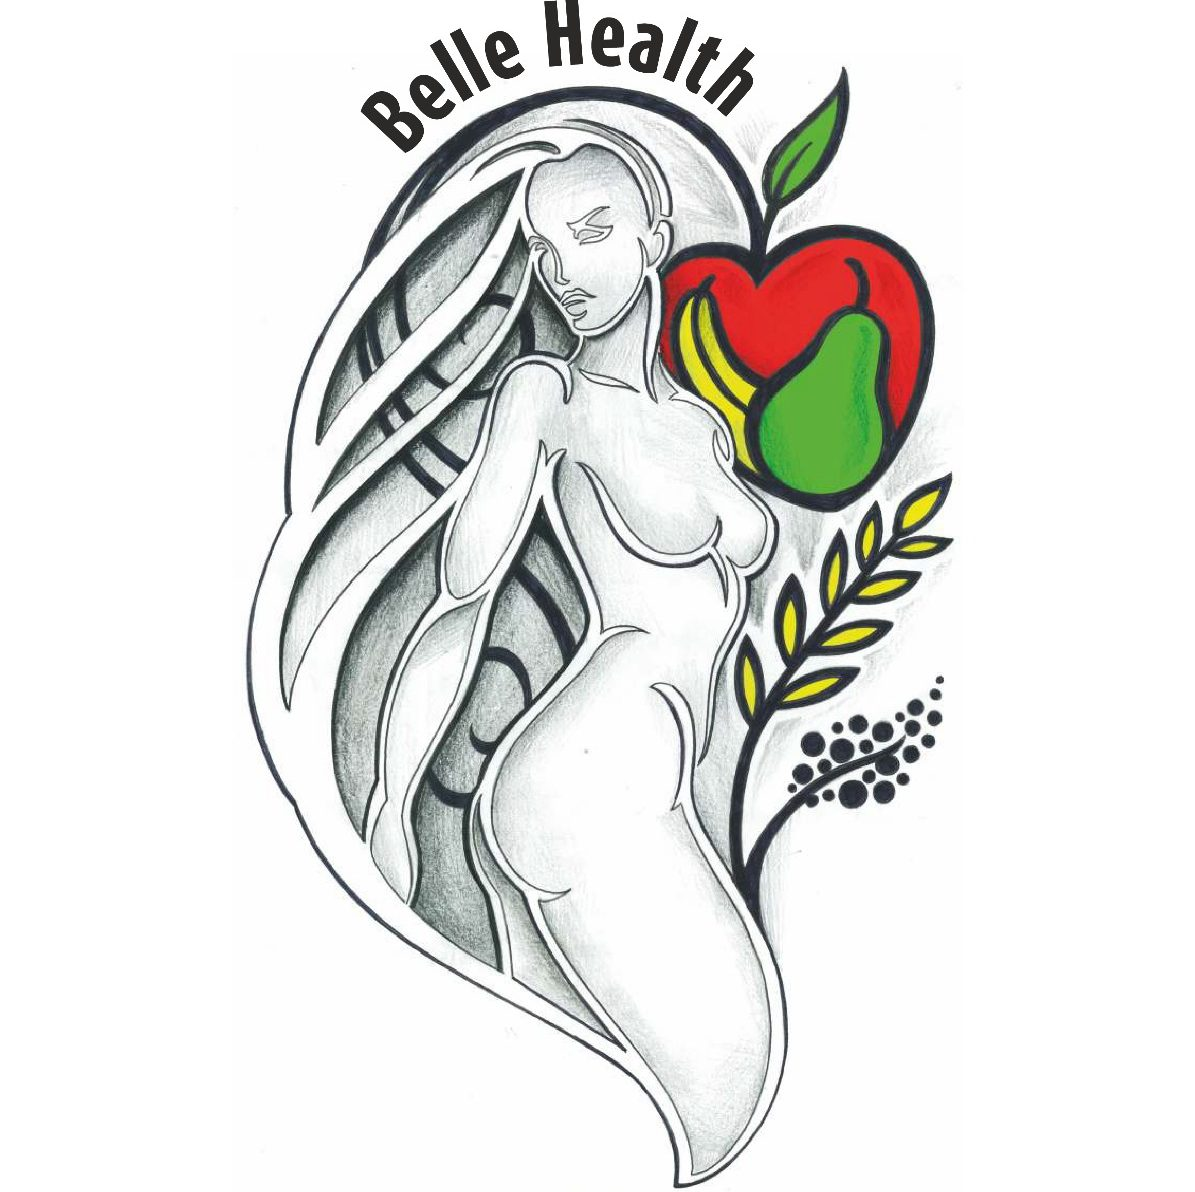 Belle Health vitaliteitsmanagement logo